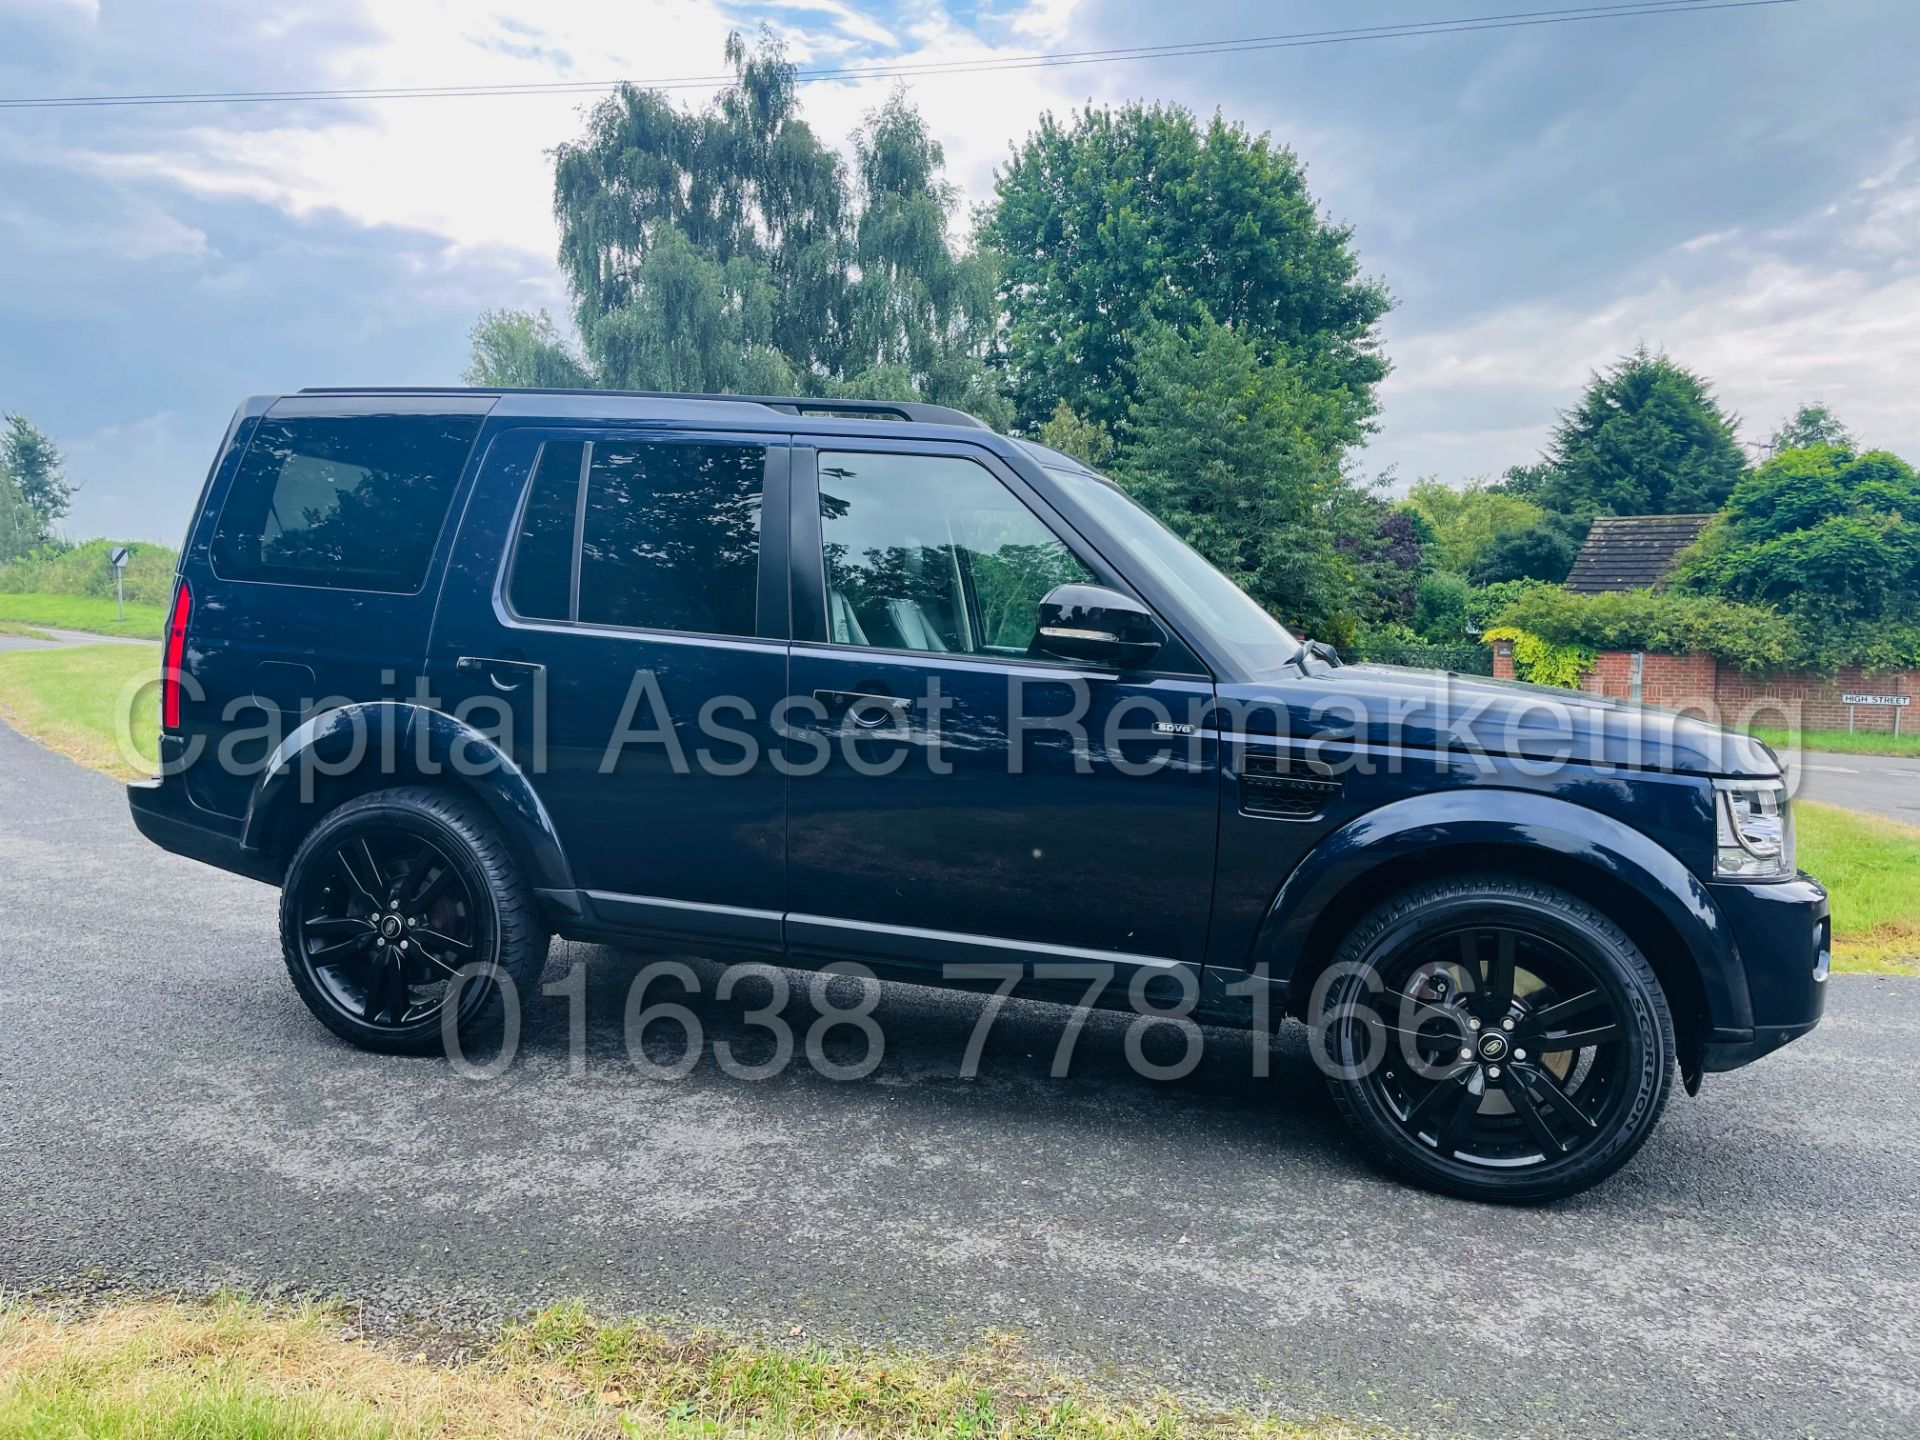 LAND ROVER DISCOVERY 4 *HSE* 7 SEATER SUV (2014 - NEW MODEL) '3.0 SDV6 - 255 BHP - 8 SPEED AUTO' - Image 14 of 61